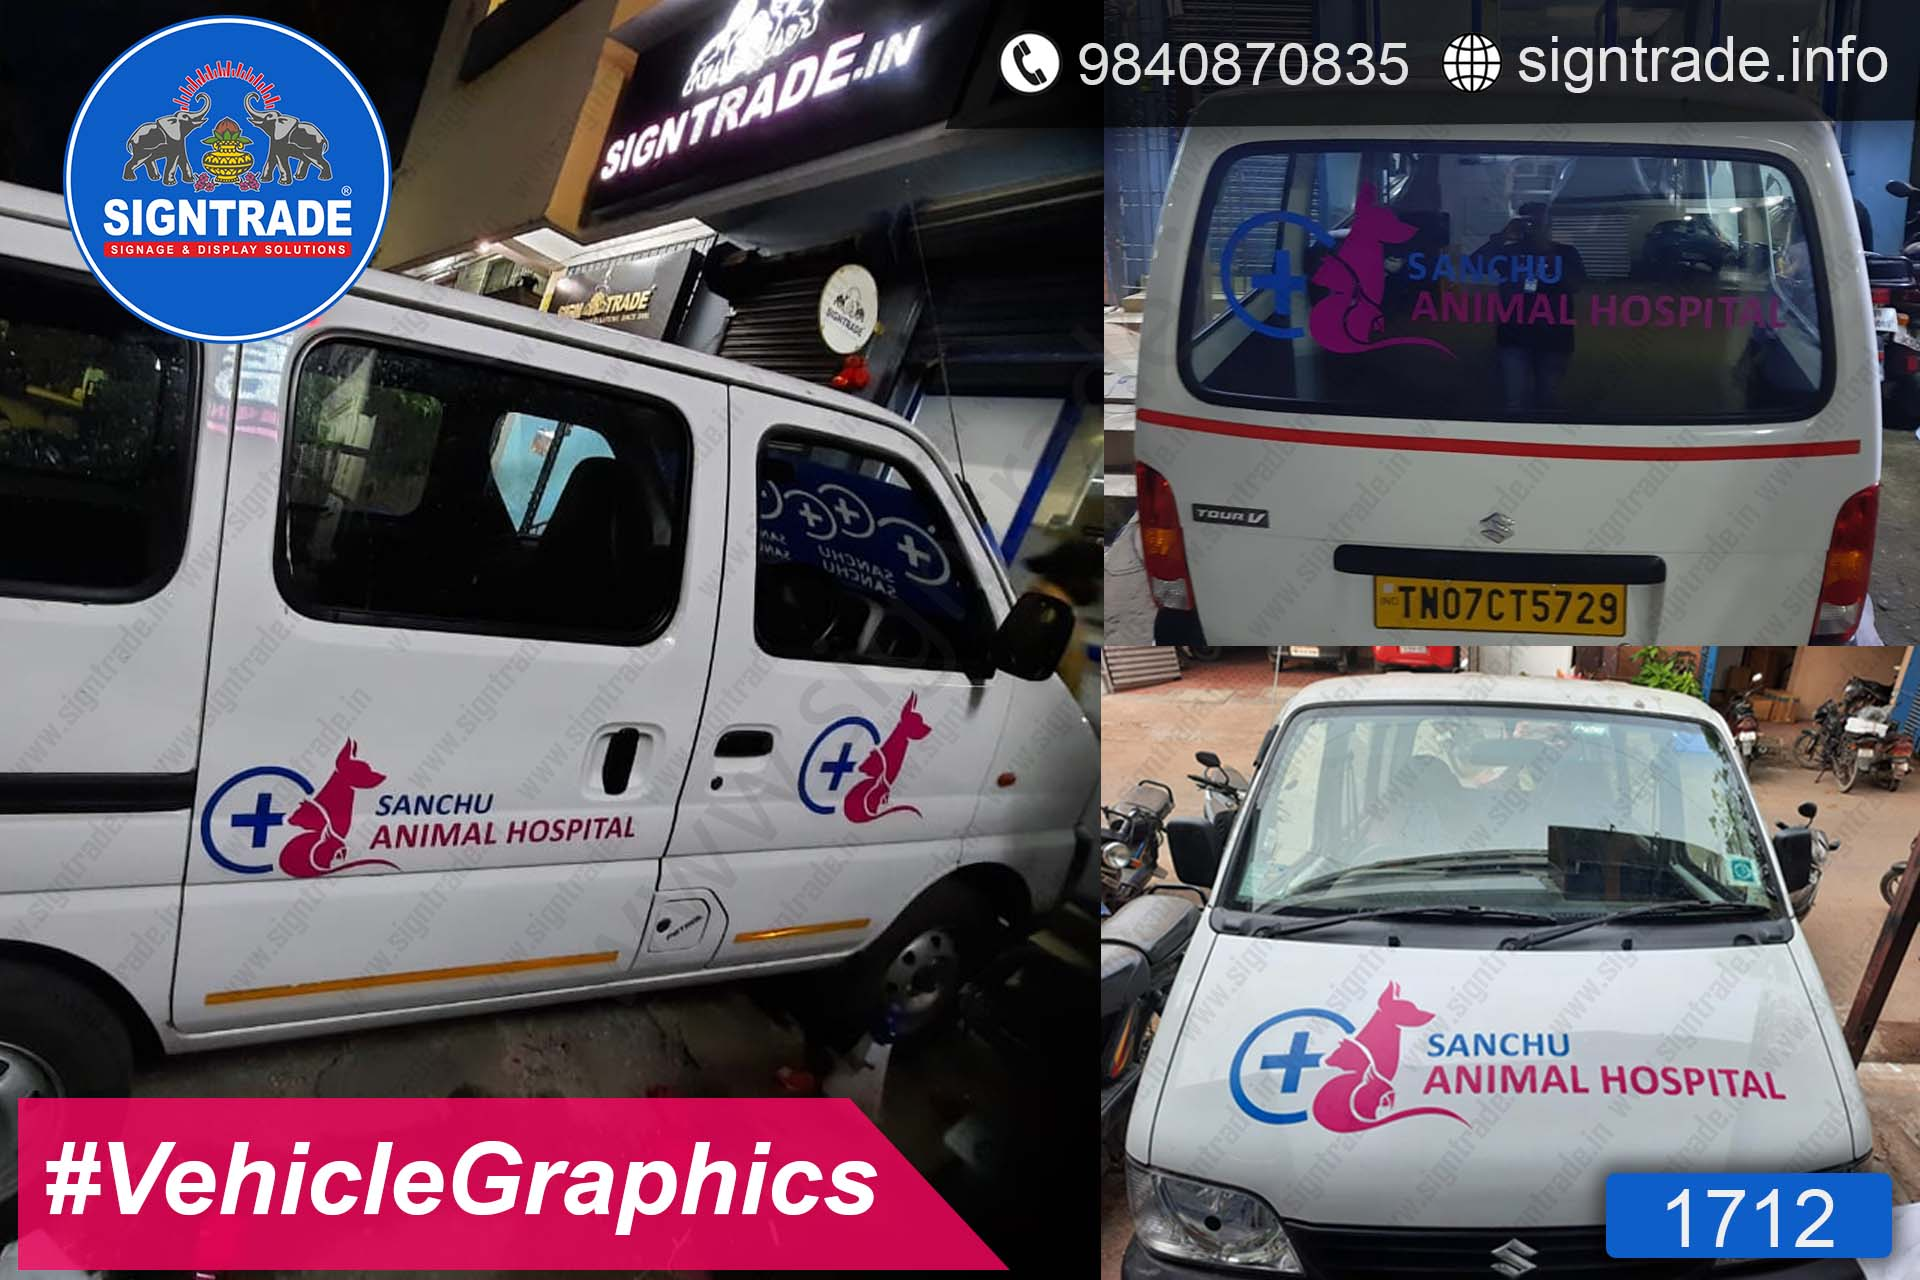 Sanchu Animal Hospital, Chennai - SIGNTRADE - Vinyl Printing, Vehicle Graphics Service in Chennai